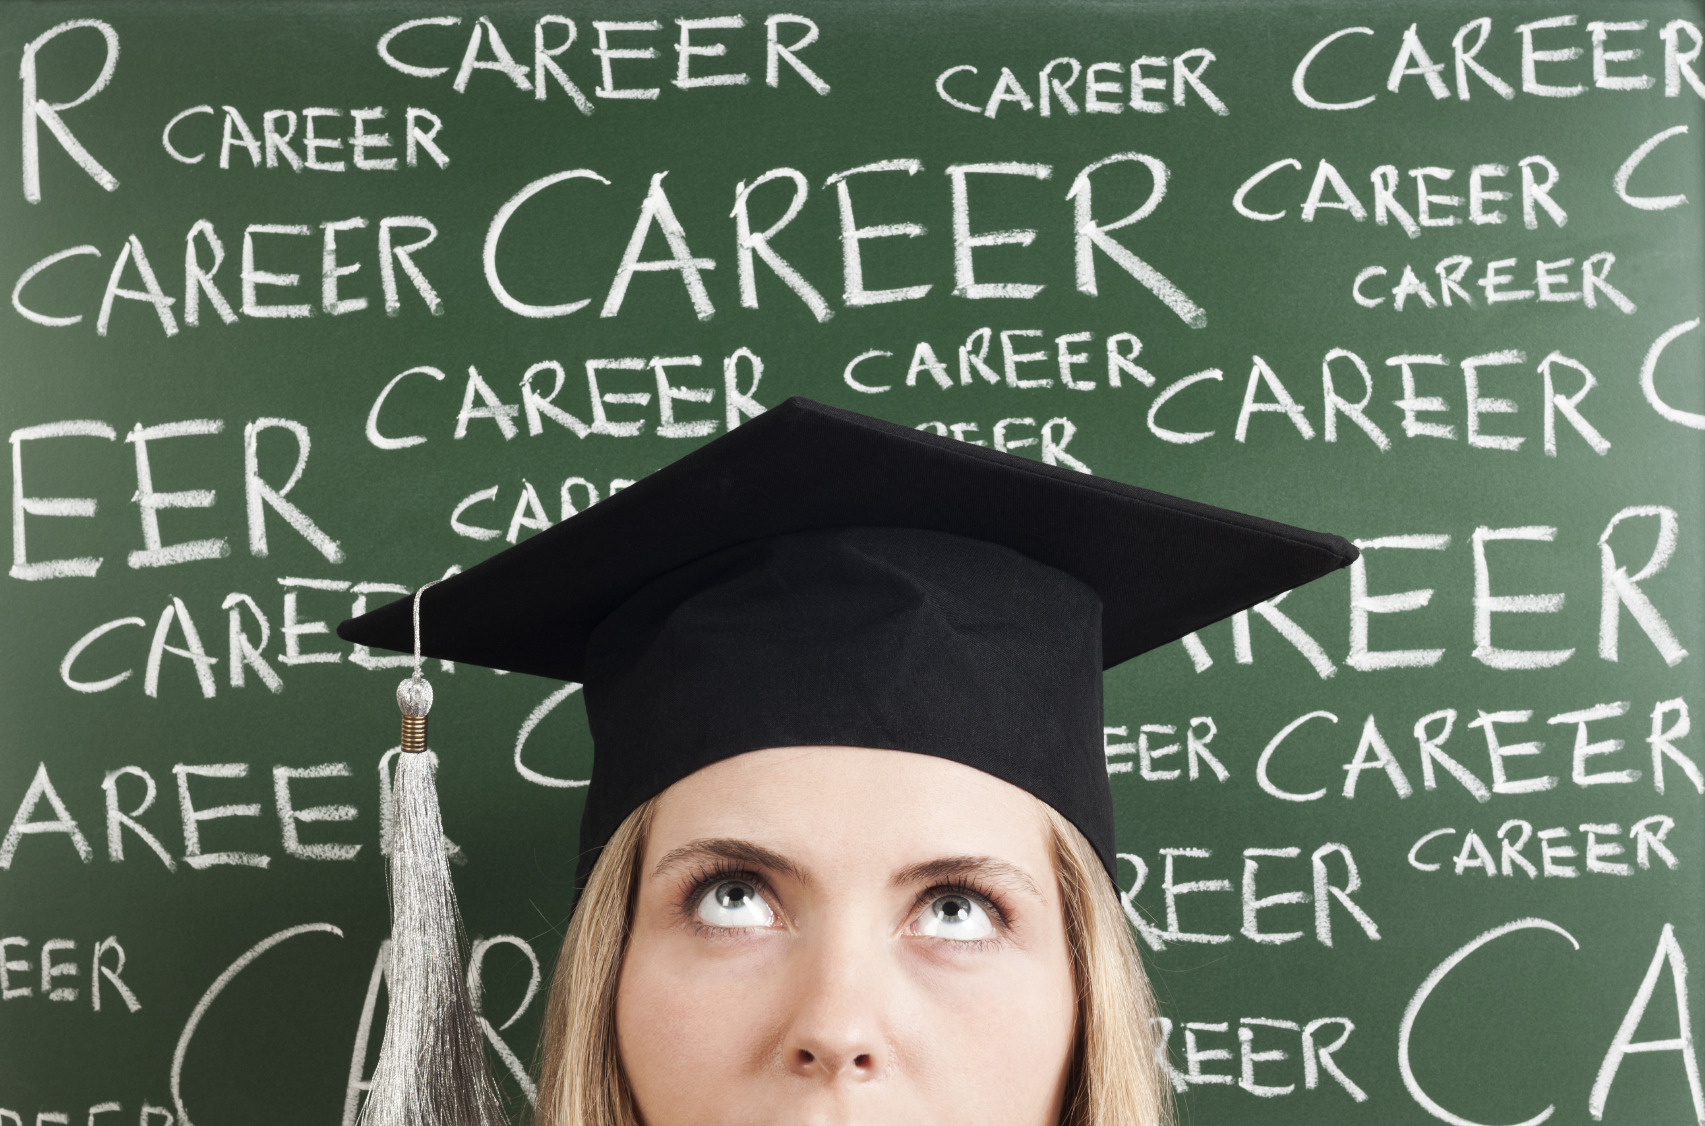 10 career advice tips for recent college grads